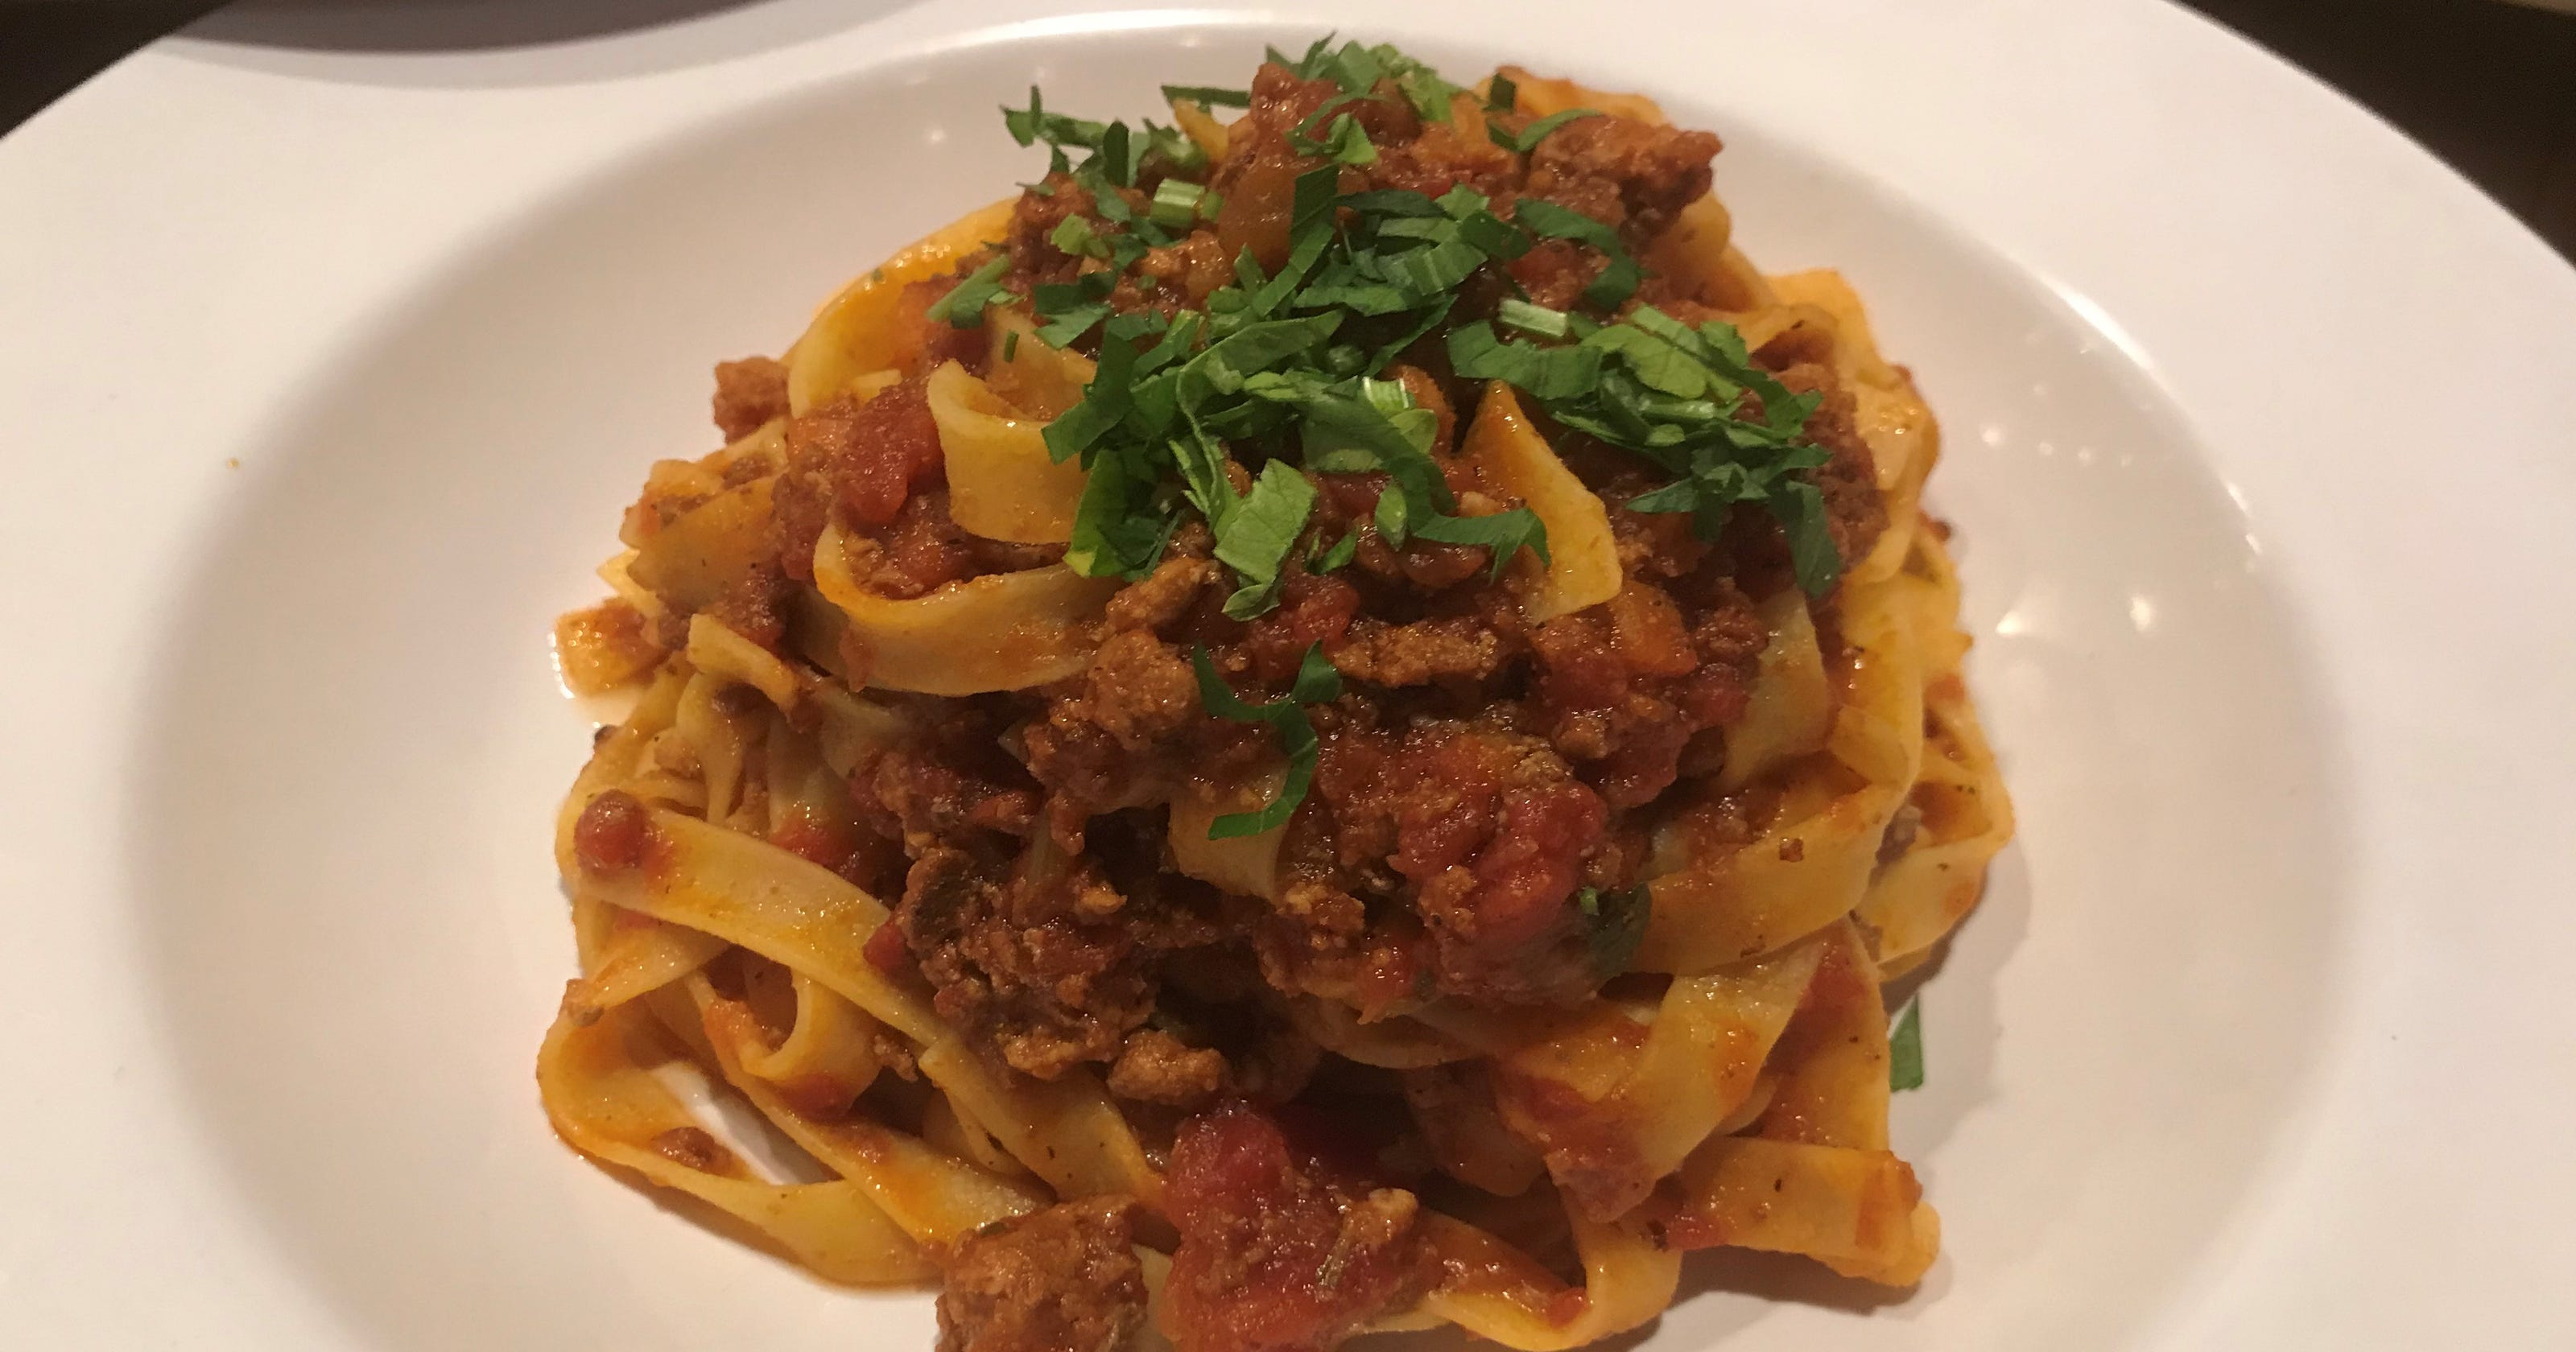 Barilla fast-casual restaurants in L.A., NYC